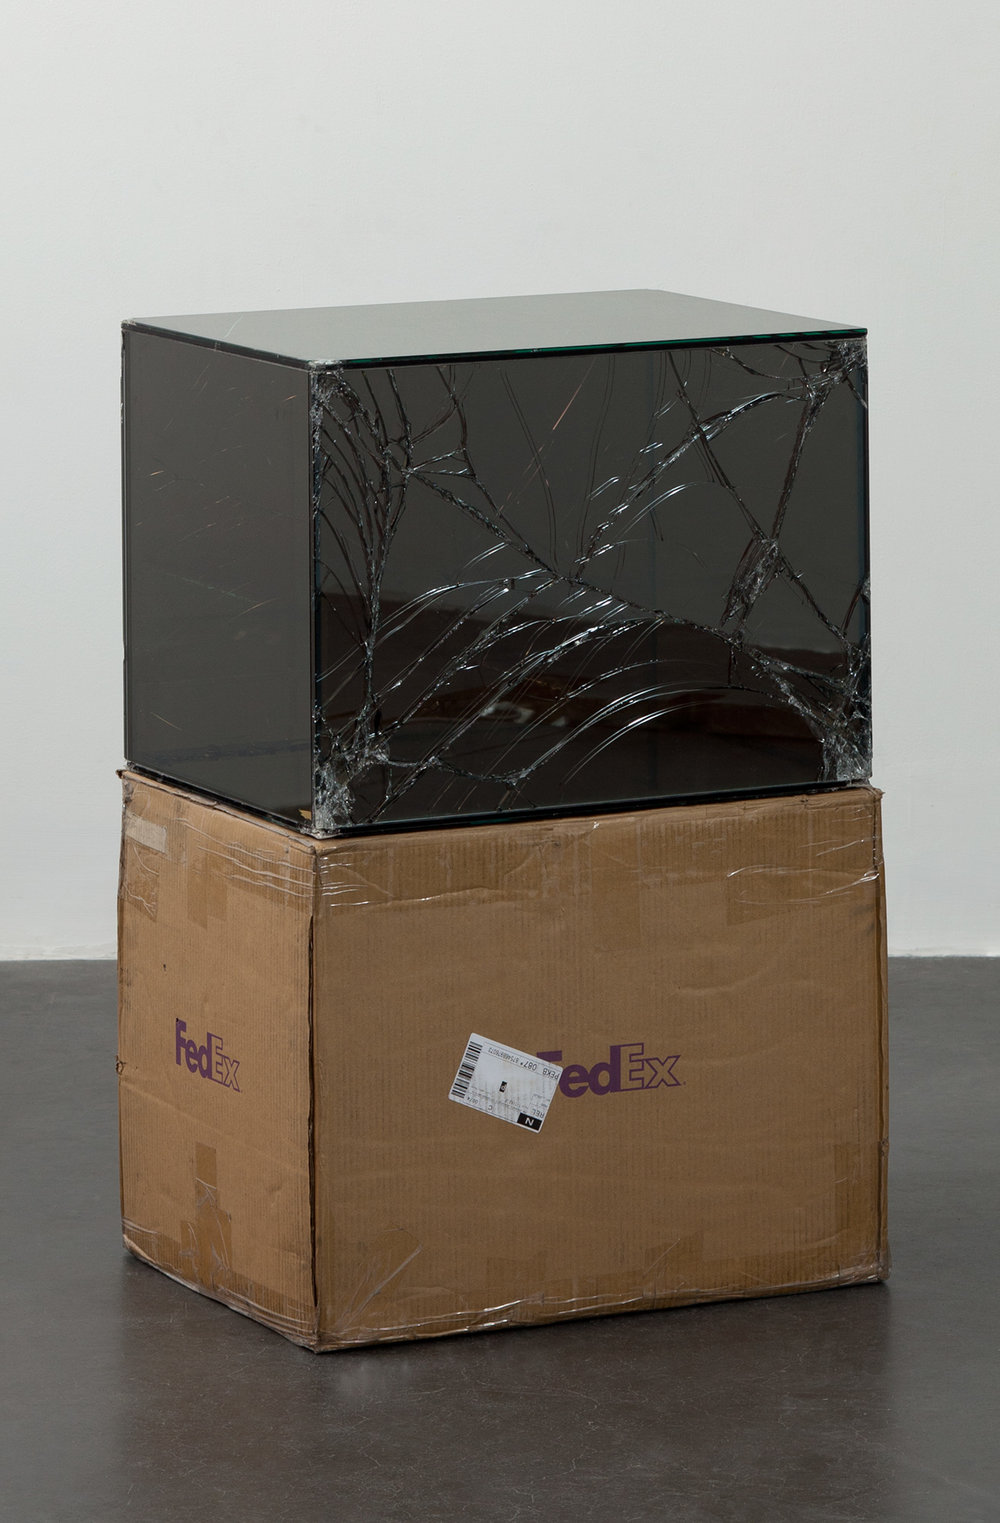 FedEx Large Kraft Box 2004 FEDEX 155143 REV 10/04 SSCC, International Priority, Los Angeles–Beijing trk#875468976073, September 09–14, 2011, International Priority, Beijing–Miami trk#874108926322, November 23–28, 2011, International Priority, Los Angeles–London trk#793287180666, February 29–March 2, 2012    2011–   Laminated Mirropane, FedEx shipping box, accrued FedEx shipping and tracking labels, silicone, metal, tape  23 5/8 x 18 1/2 x 18 1/2 inches   Securities and Exchanges, 2011